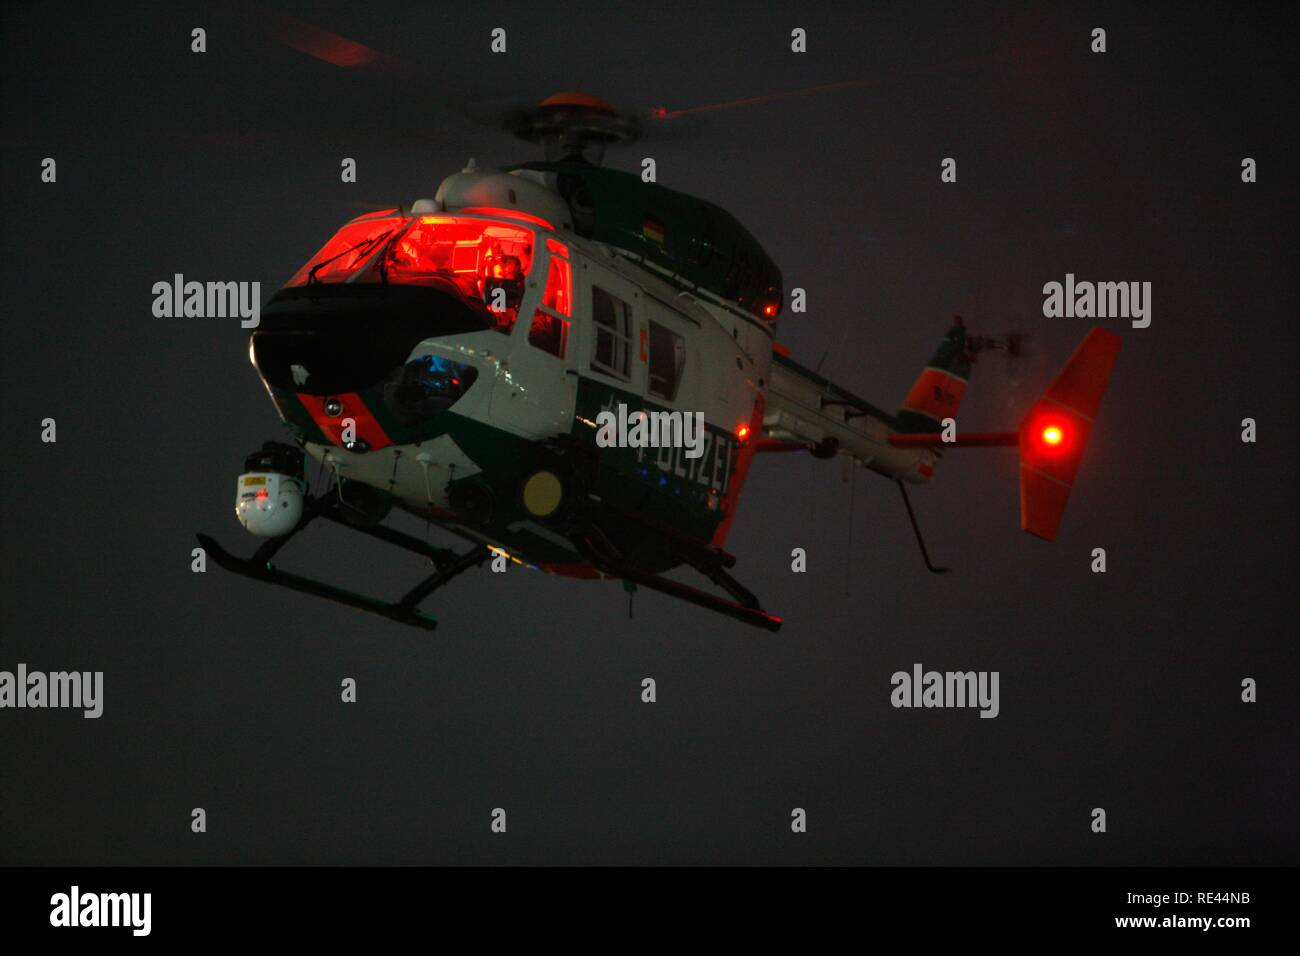 Patrol helicopter with night flying capability, image intensifier, infrared camera, night mission, police flying squadron NRW - Stock Image